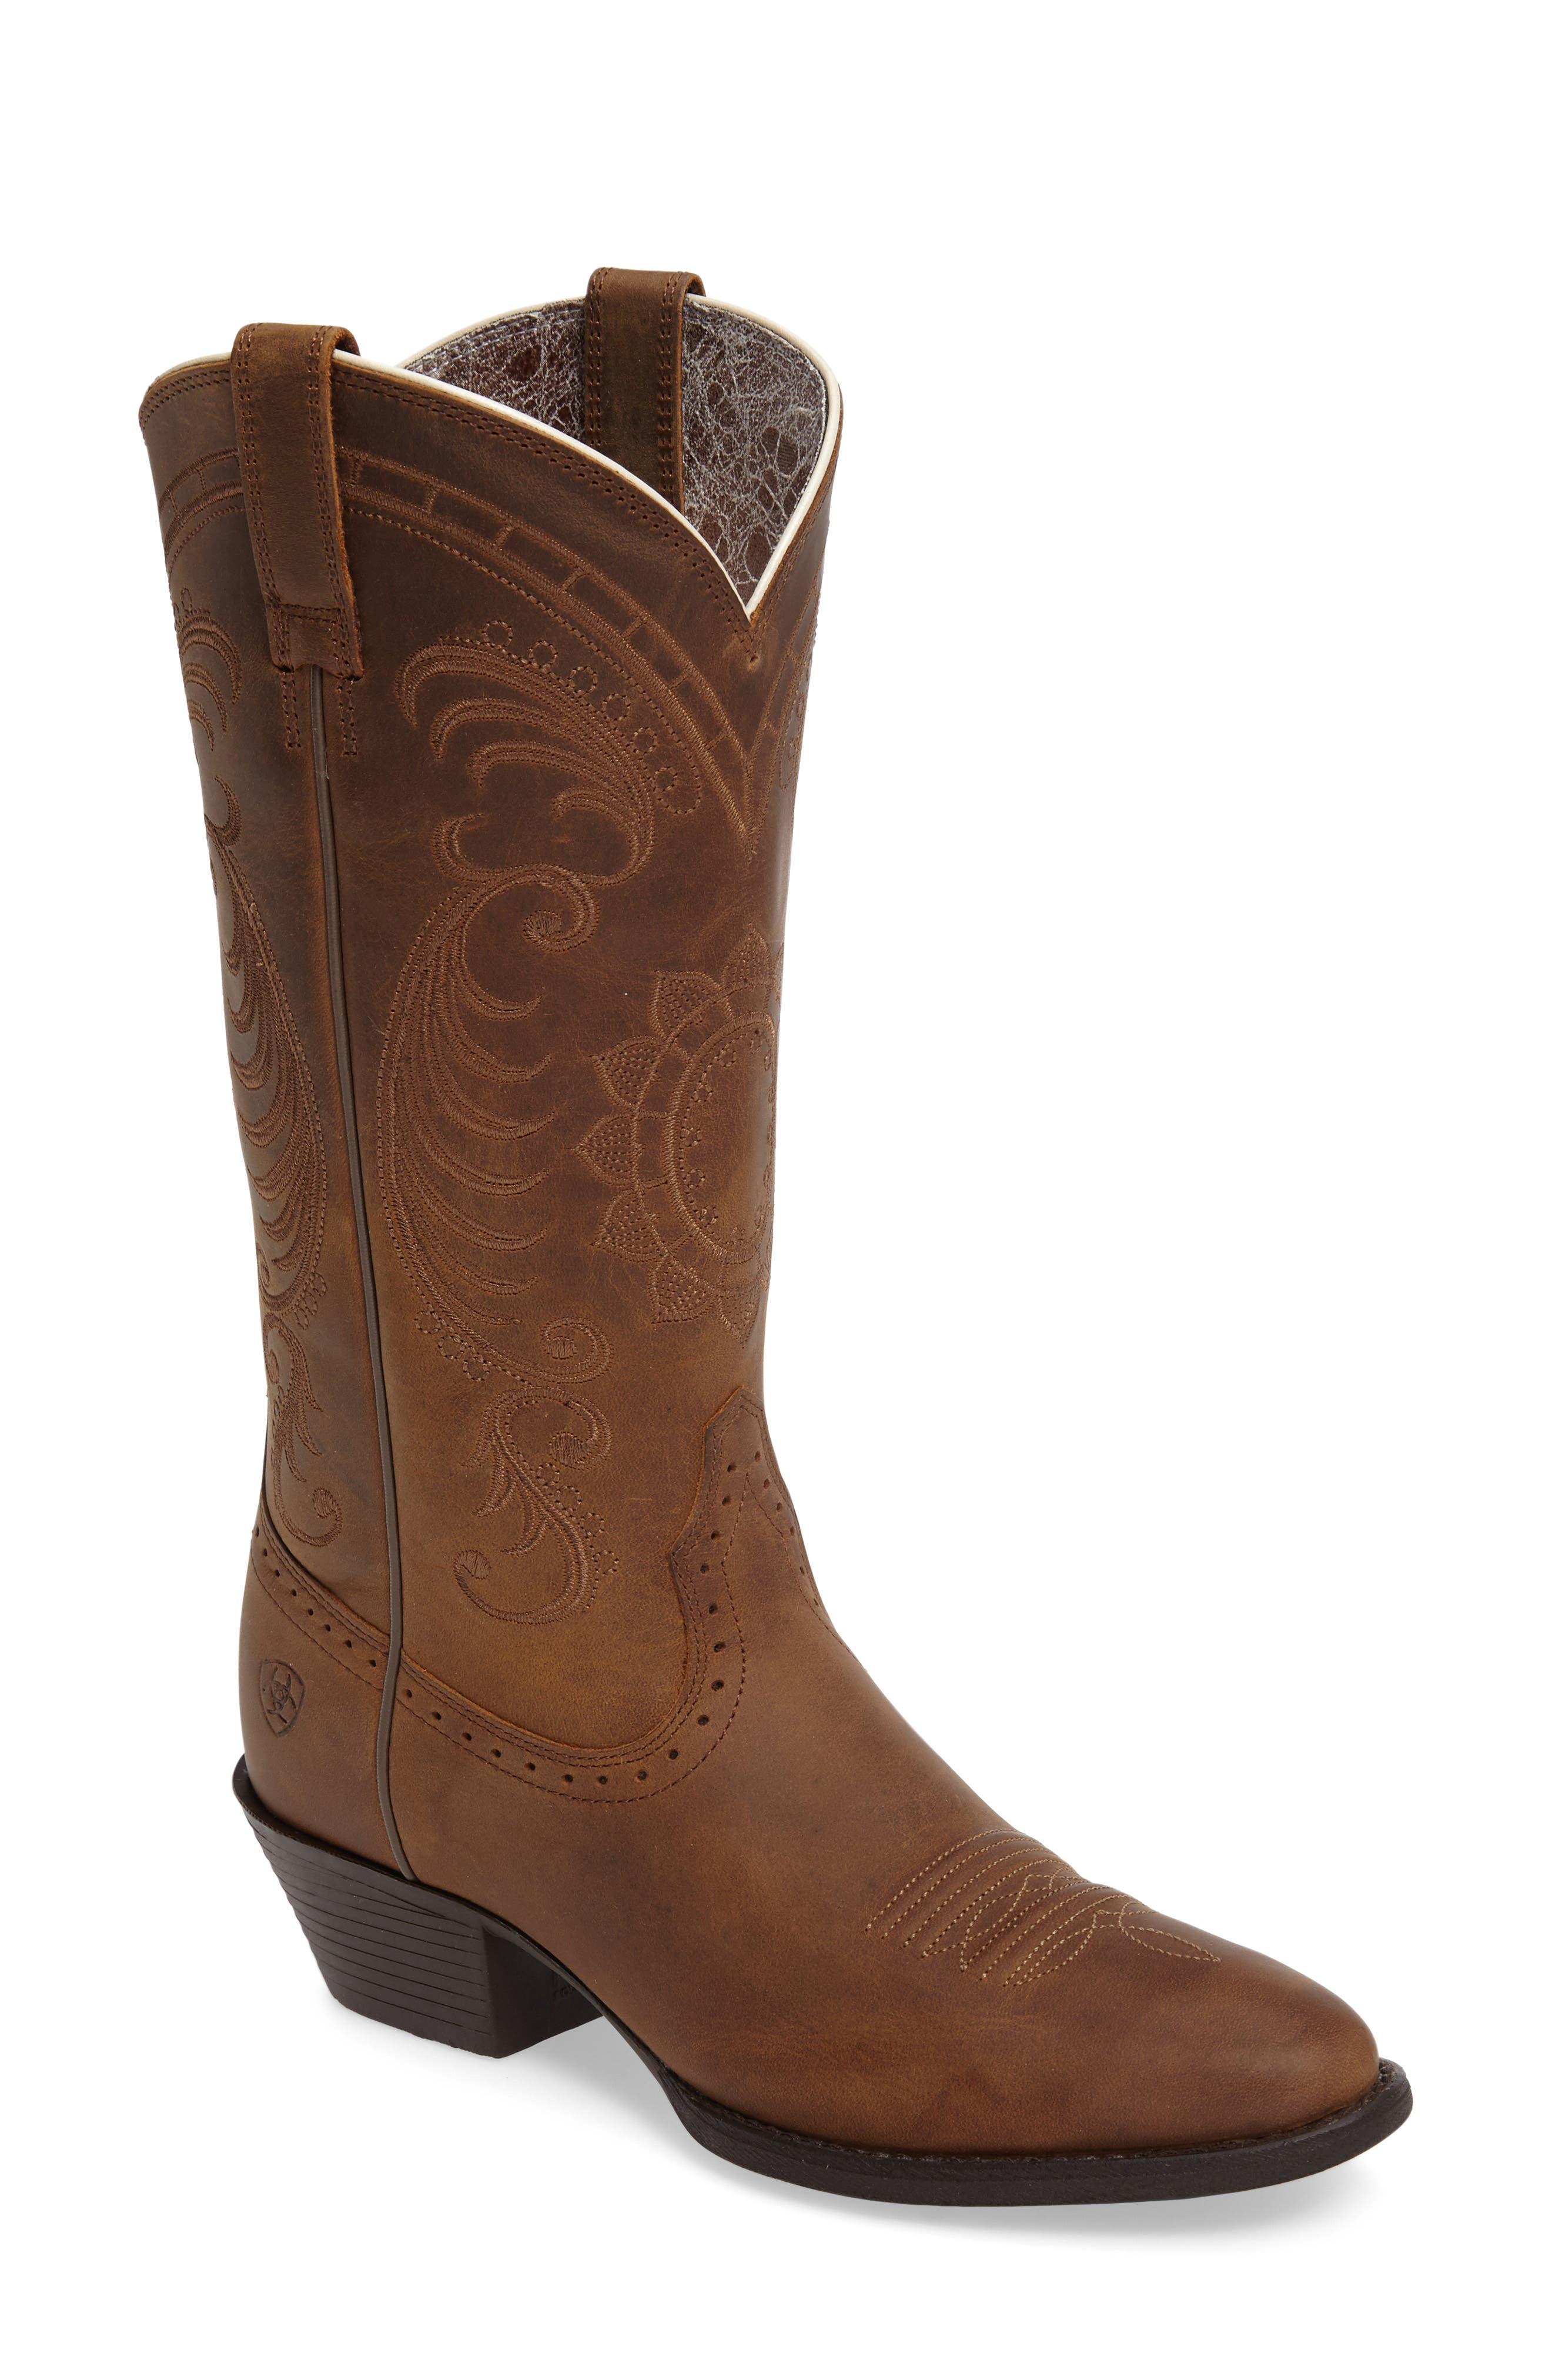 Alternate Image 1 Selected - Ariat New West Collection - Magnolia Western Boot (Women)